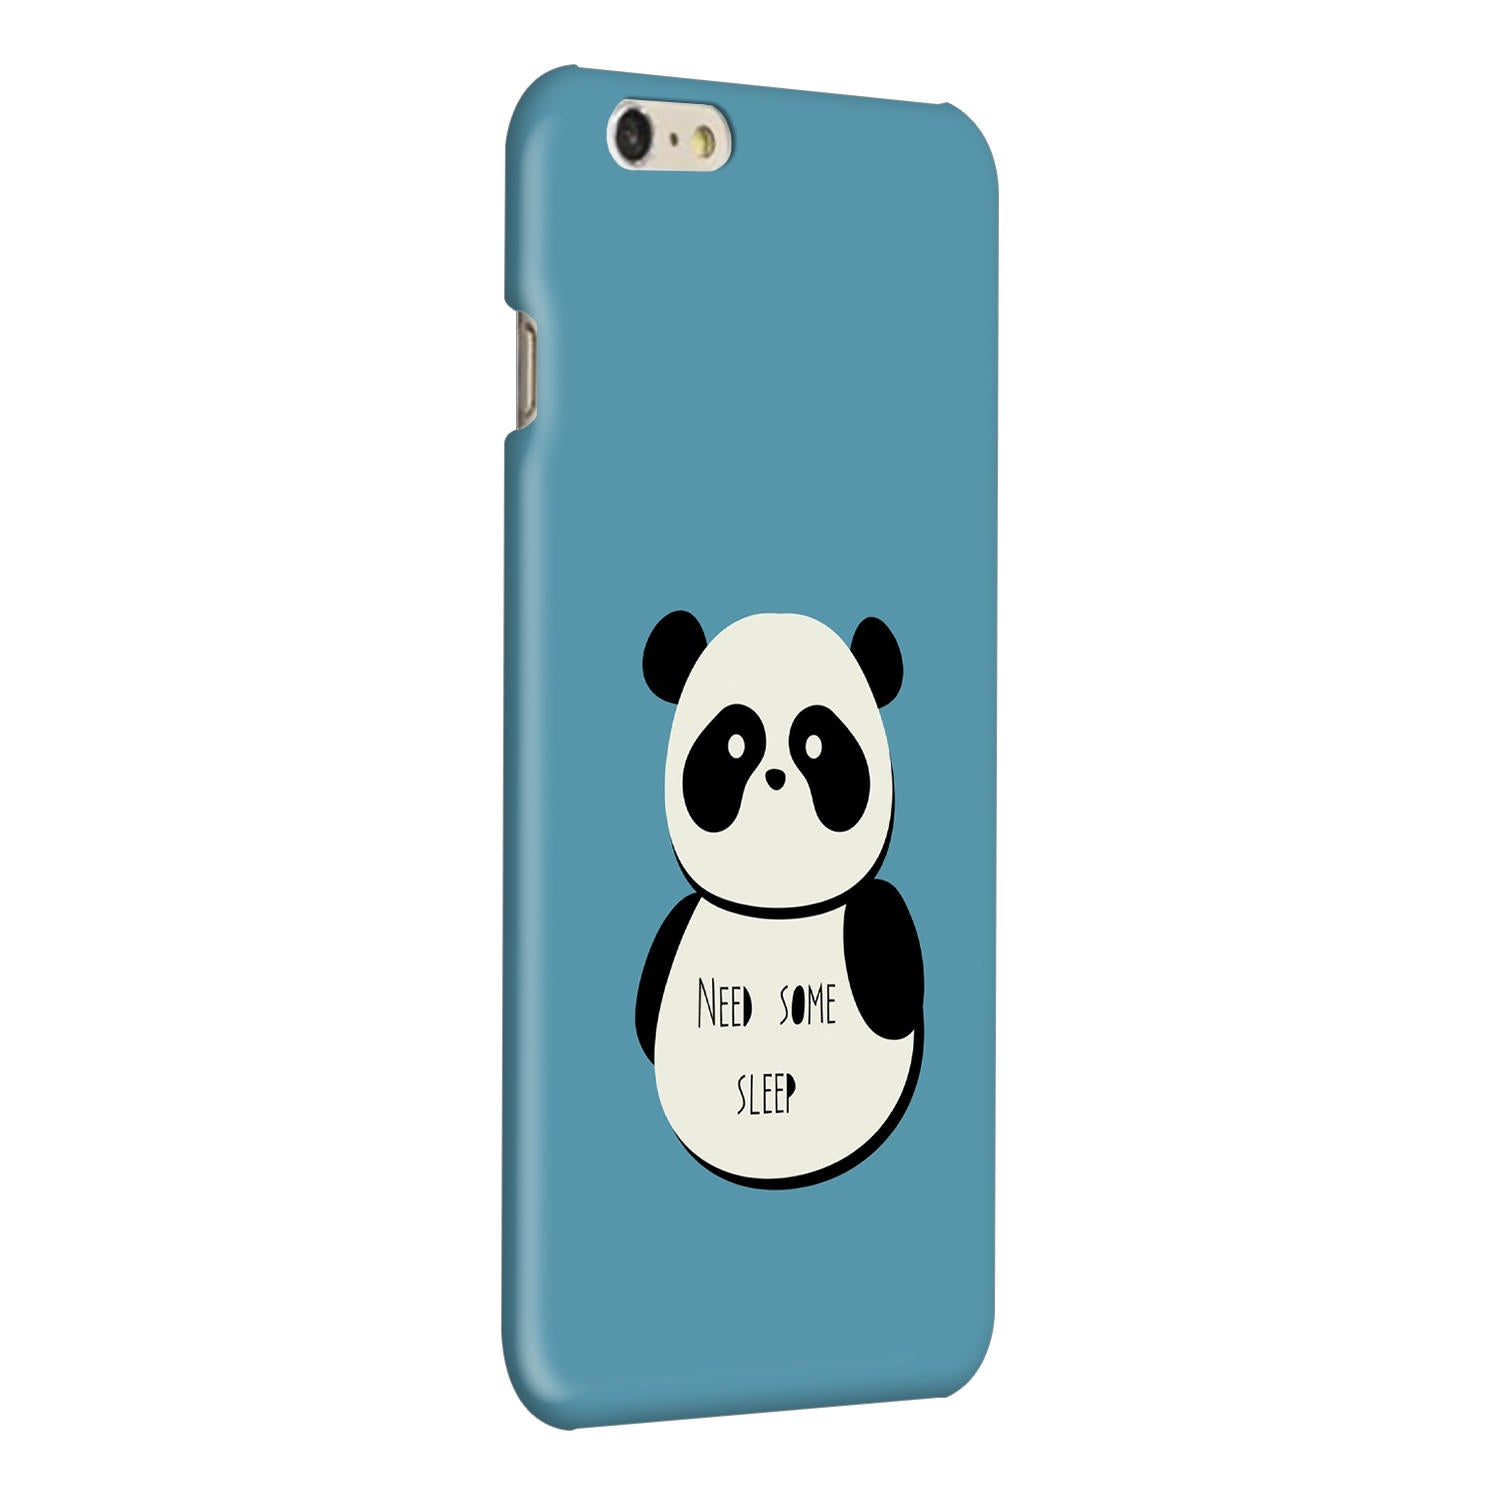 Sleepy Panda iPhone 6 Plus Mobile Cover Case